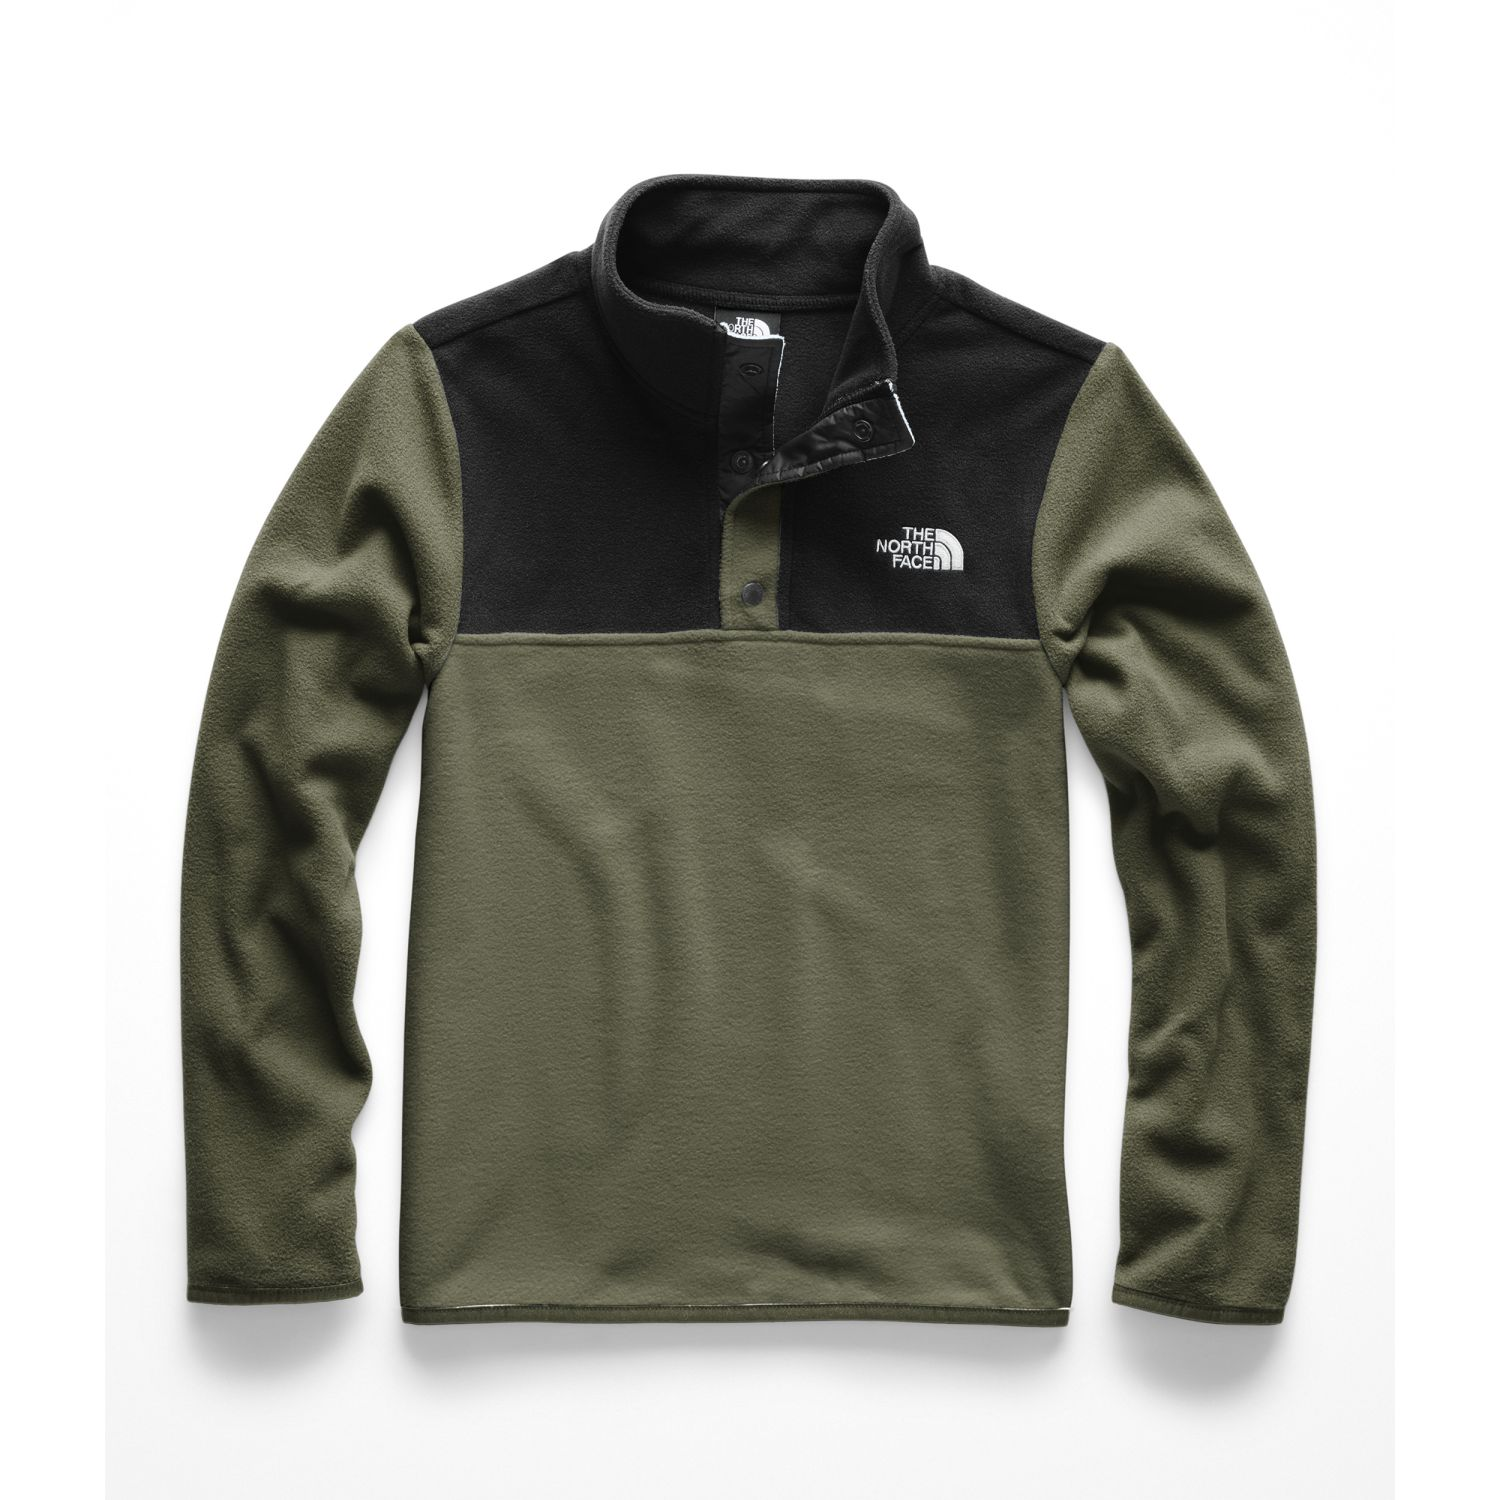 The North Face B Glacier 1/4 Snap Verde Pullover